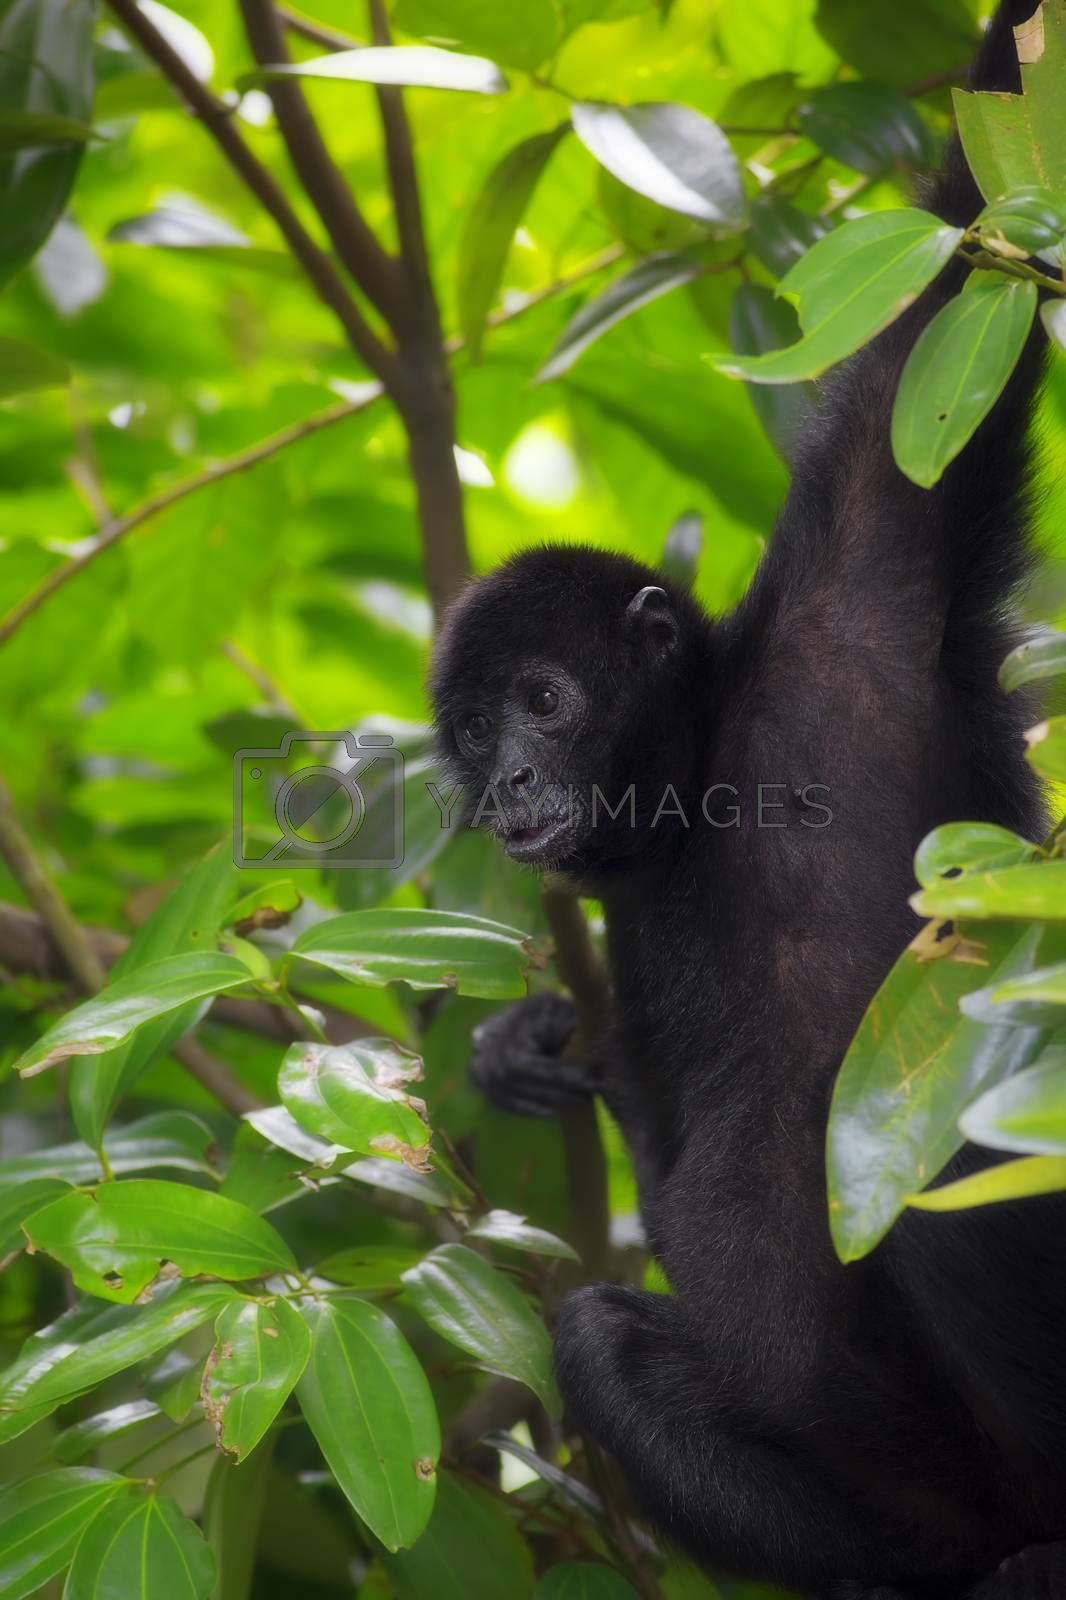 Spider Monkey in the green jungle of Costa Rica